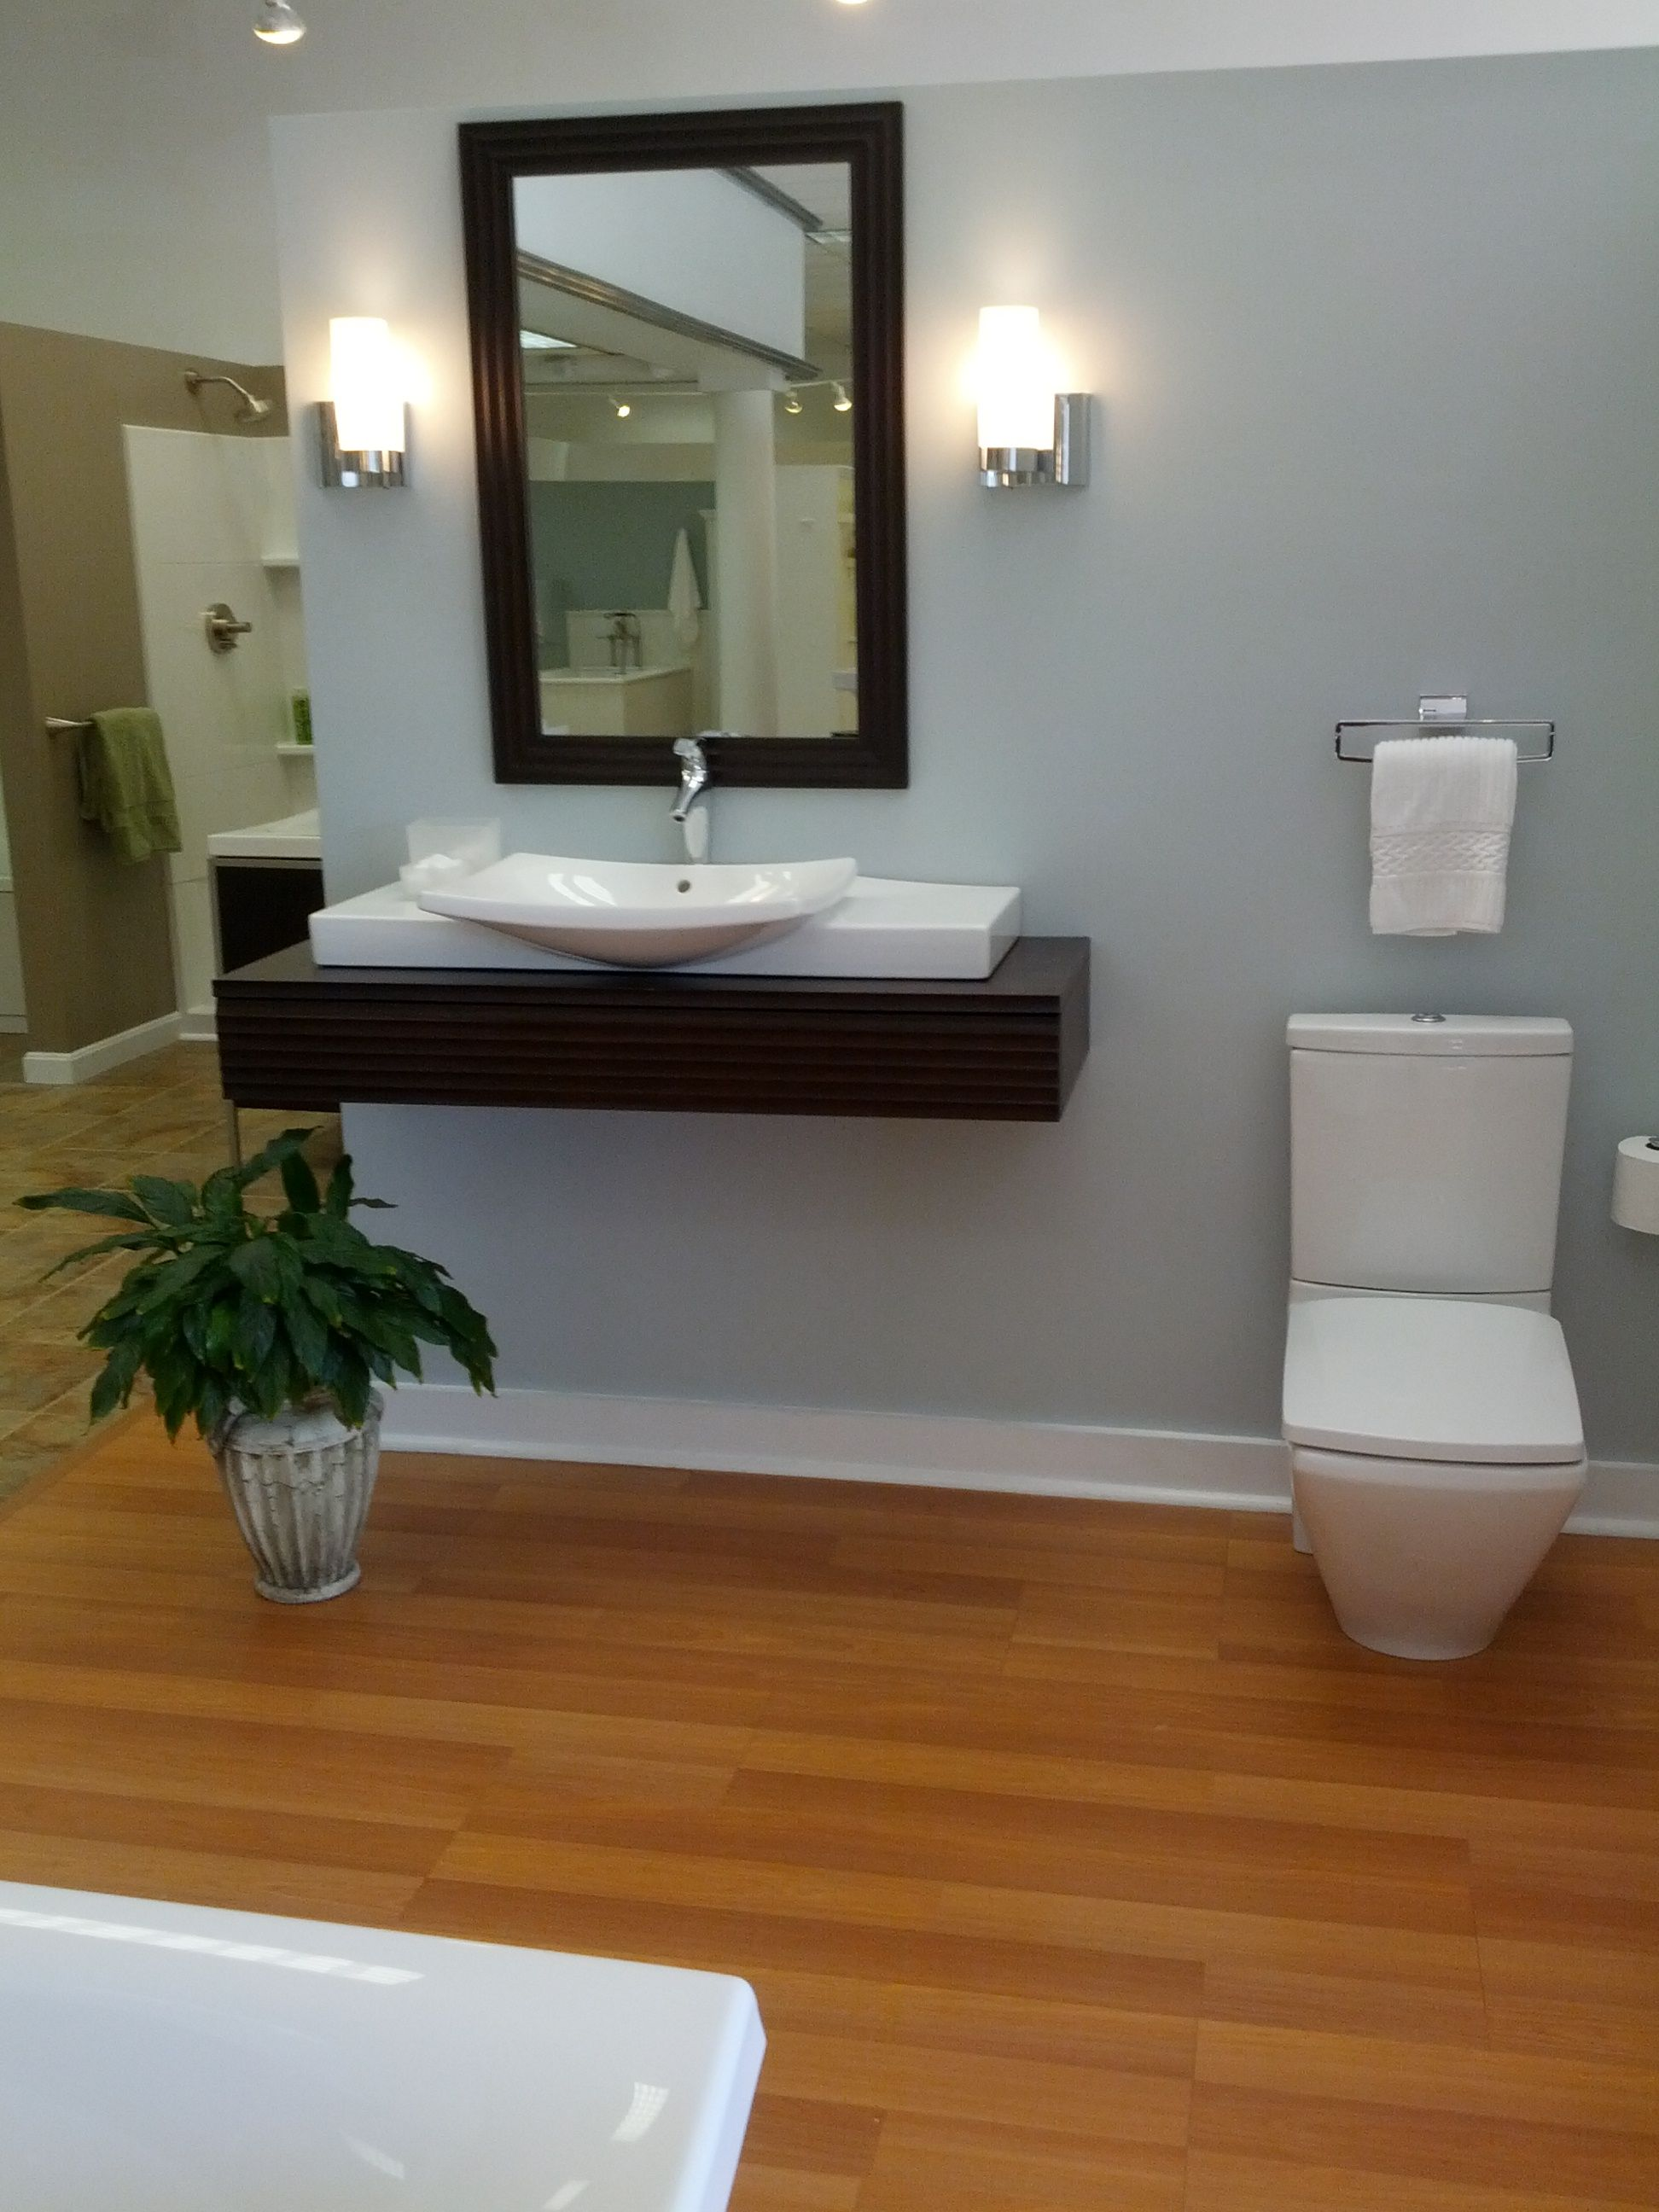 Pictures Of Modern Handicap Bathrooms For The Handicap Bathroom - Handicap bathroom sink cabinets